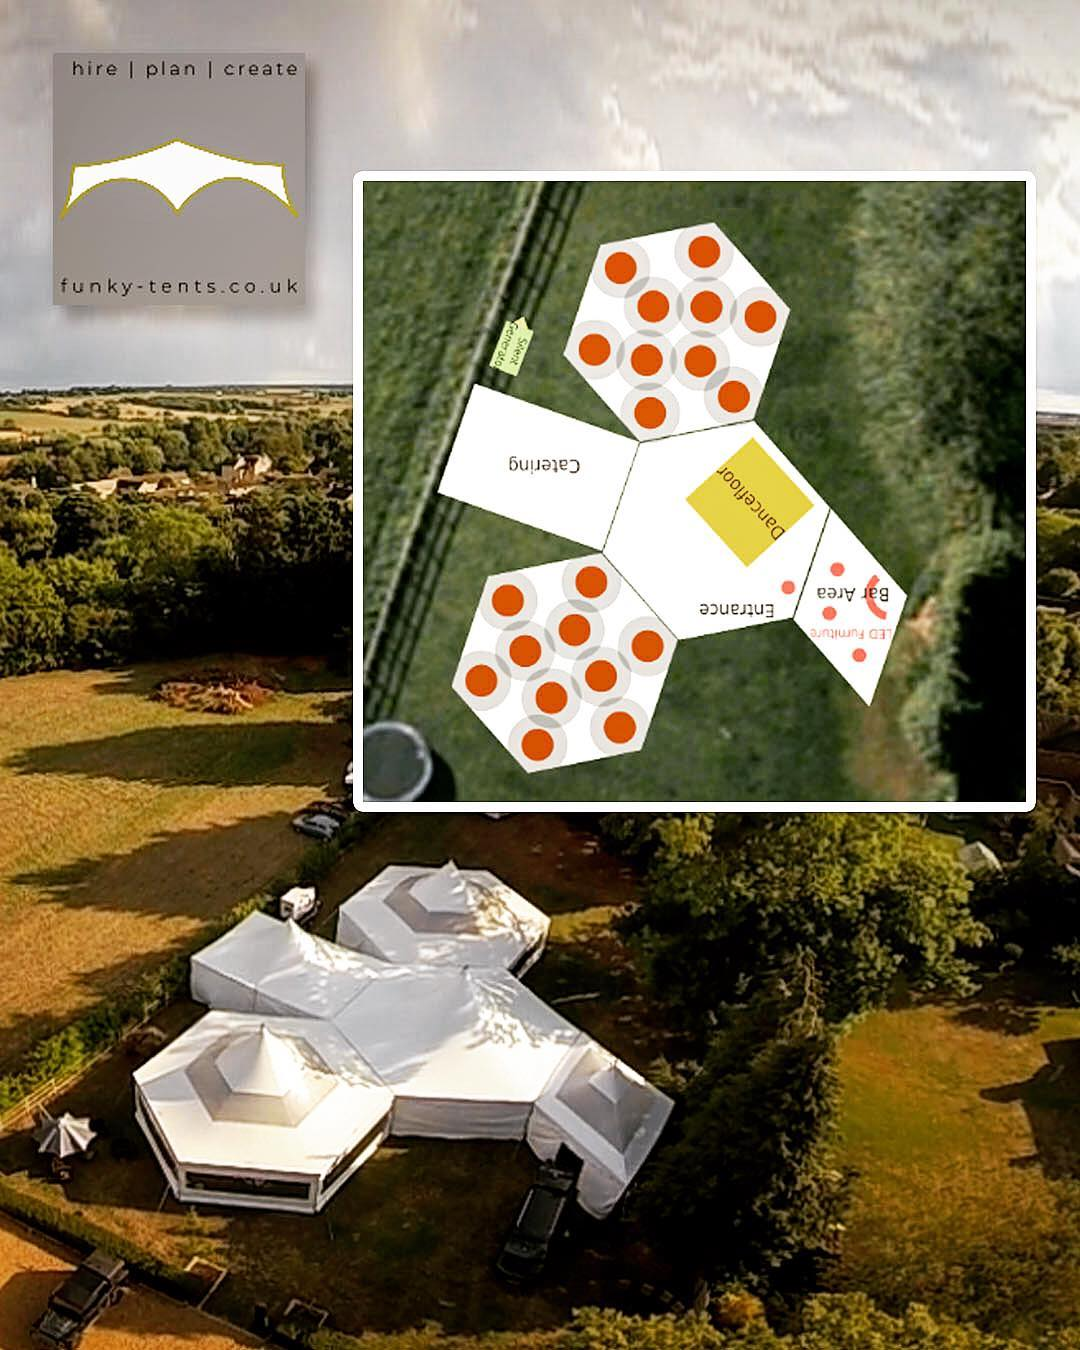 A selection of marquees huddles in a horseshoe shape to create an amazing wedding marquee with inner courtyard feel